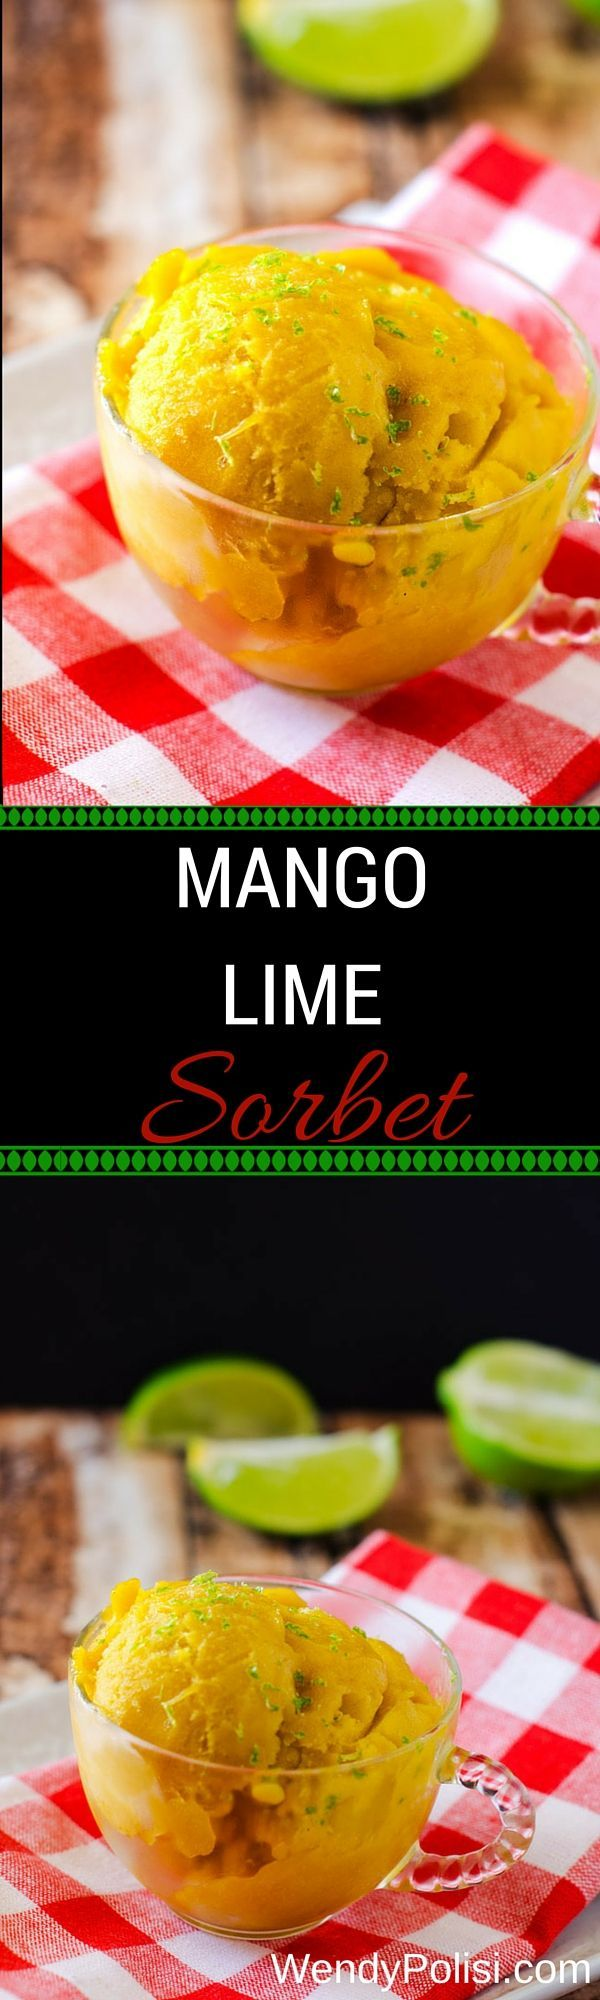 Mango Lime Sorbet - This healthy dessert is delicious and so easy to make!  A great way to get started cooking with essential oils.